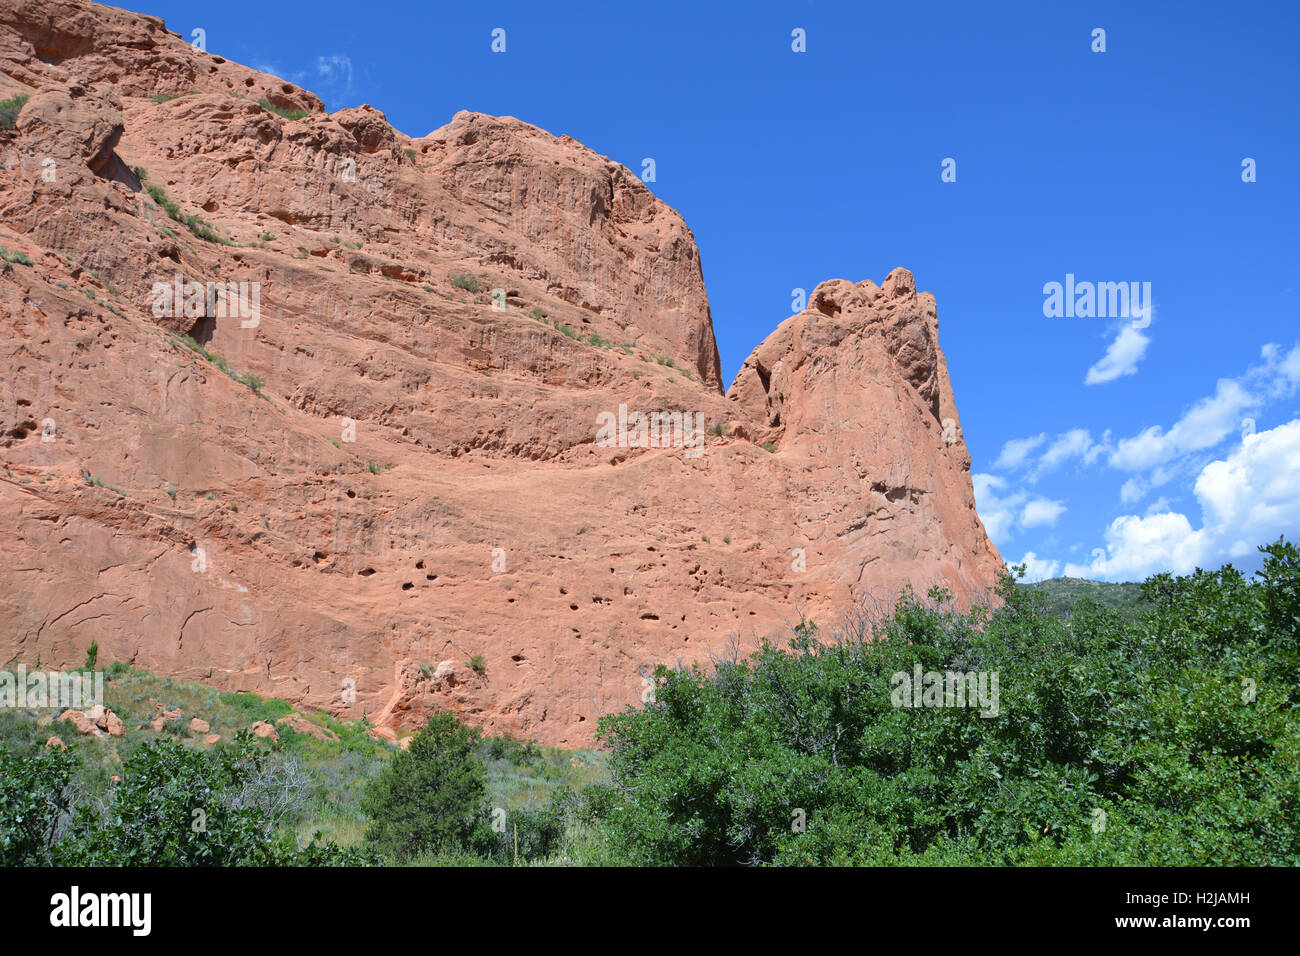 Sandstone formations at Garden of the Gods Park in Colorado Springs - Stock Image